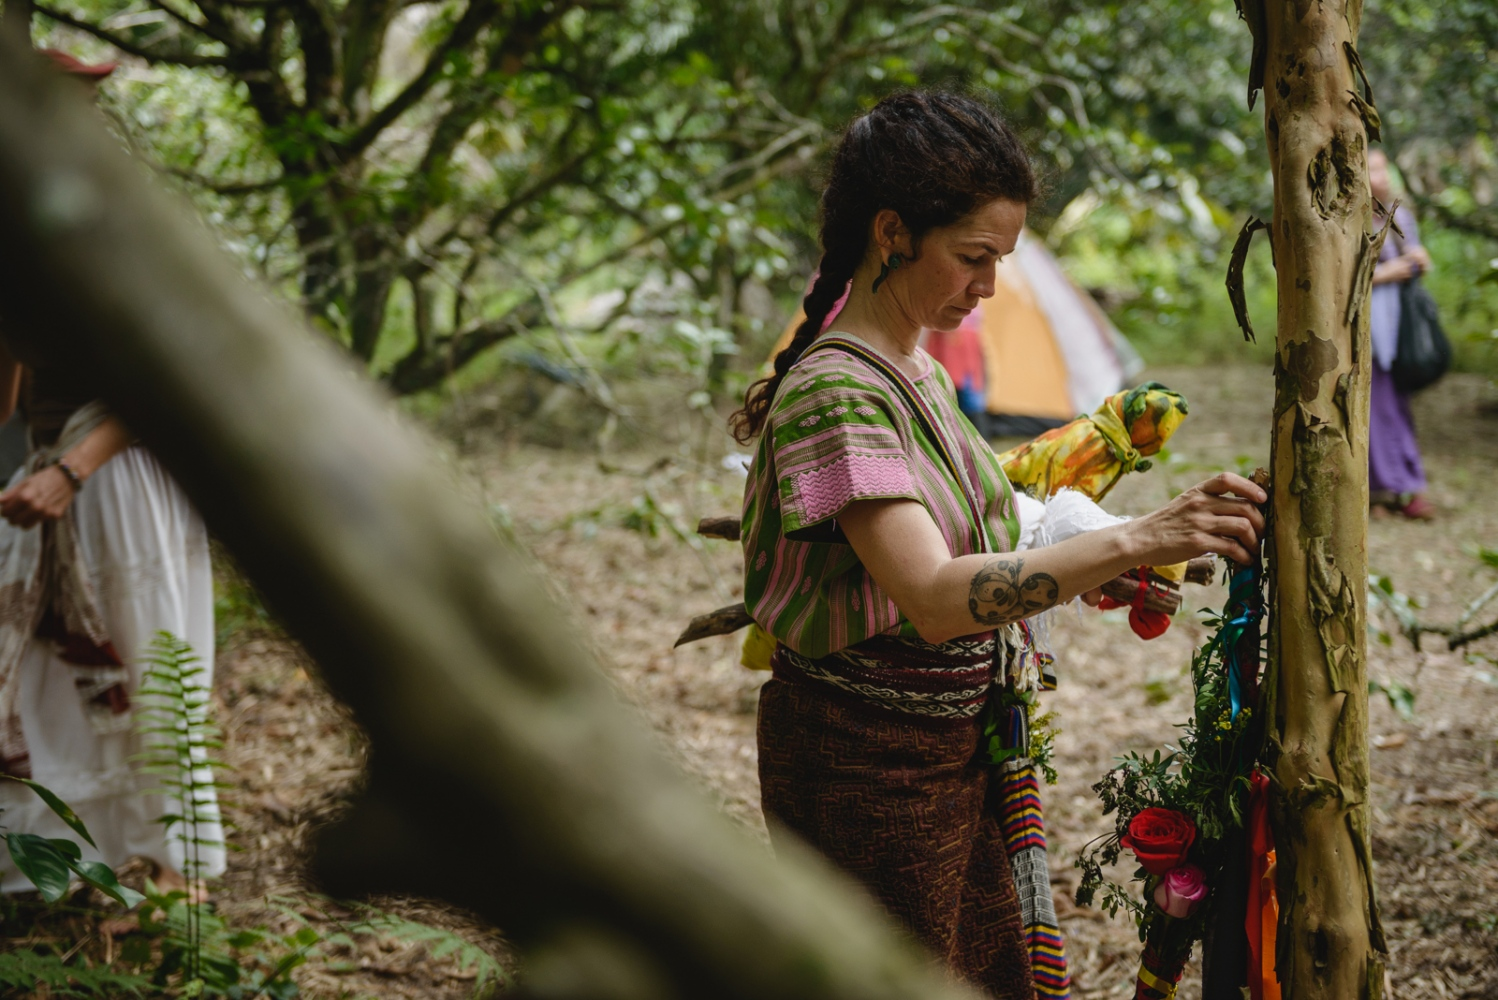 Rosa, one of the 21 visionaries who will be fasting the four days during the Vision Quest, leaves behind an offering of flowers to the spirit of the forest and the mountain.